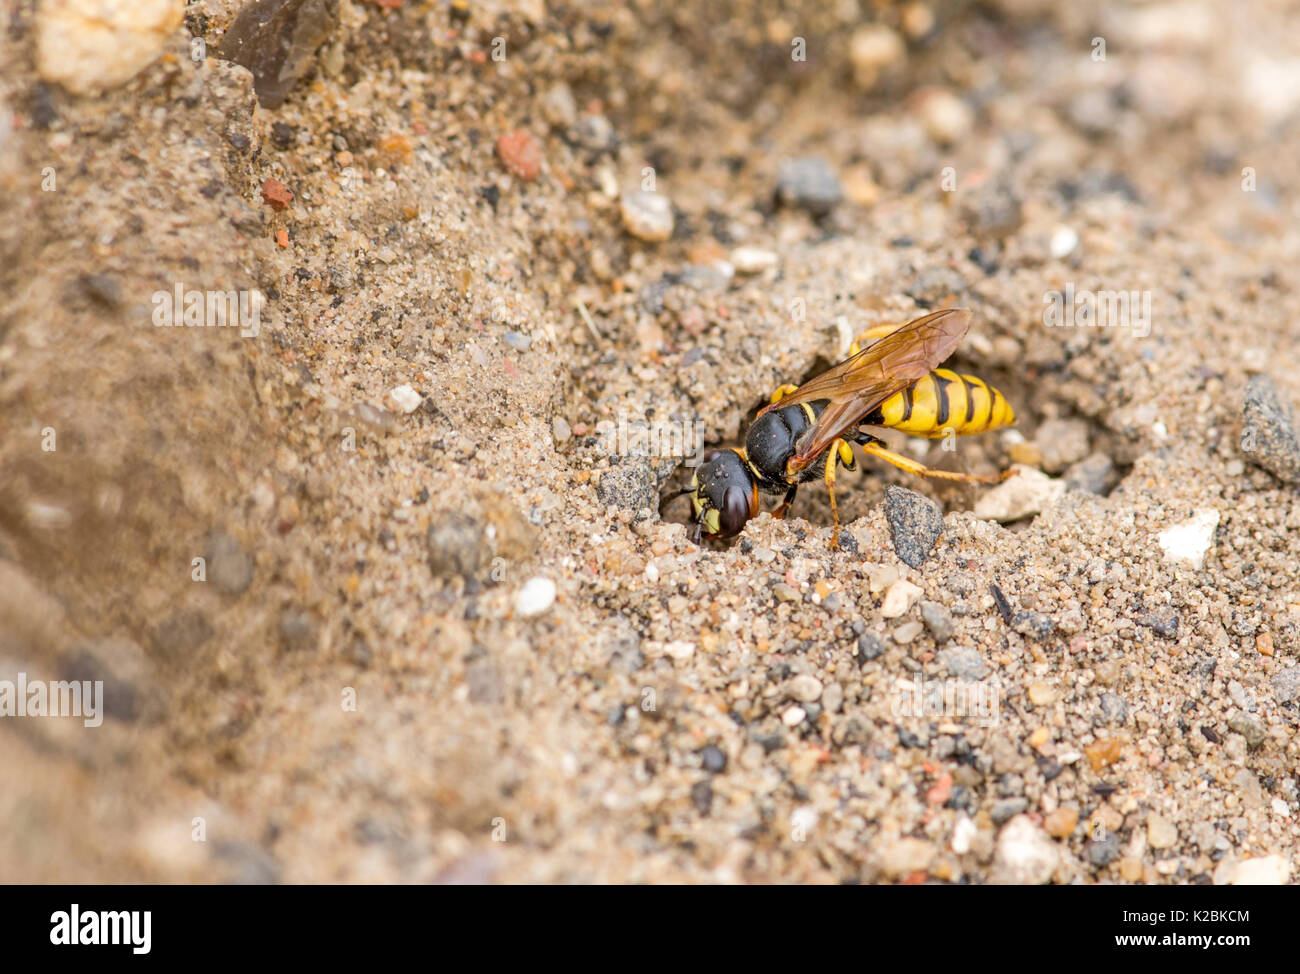 Bee-killer wasp (Philanthus triangulum) excavating a hole. The species is also known as bee-wolf and is a type of digger wasp. - Stock Image